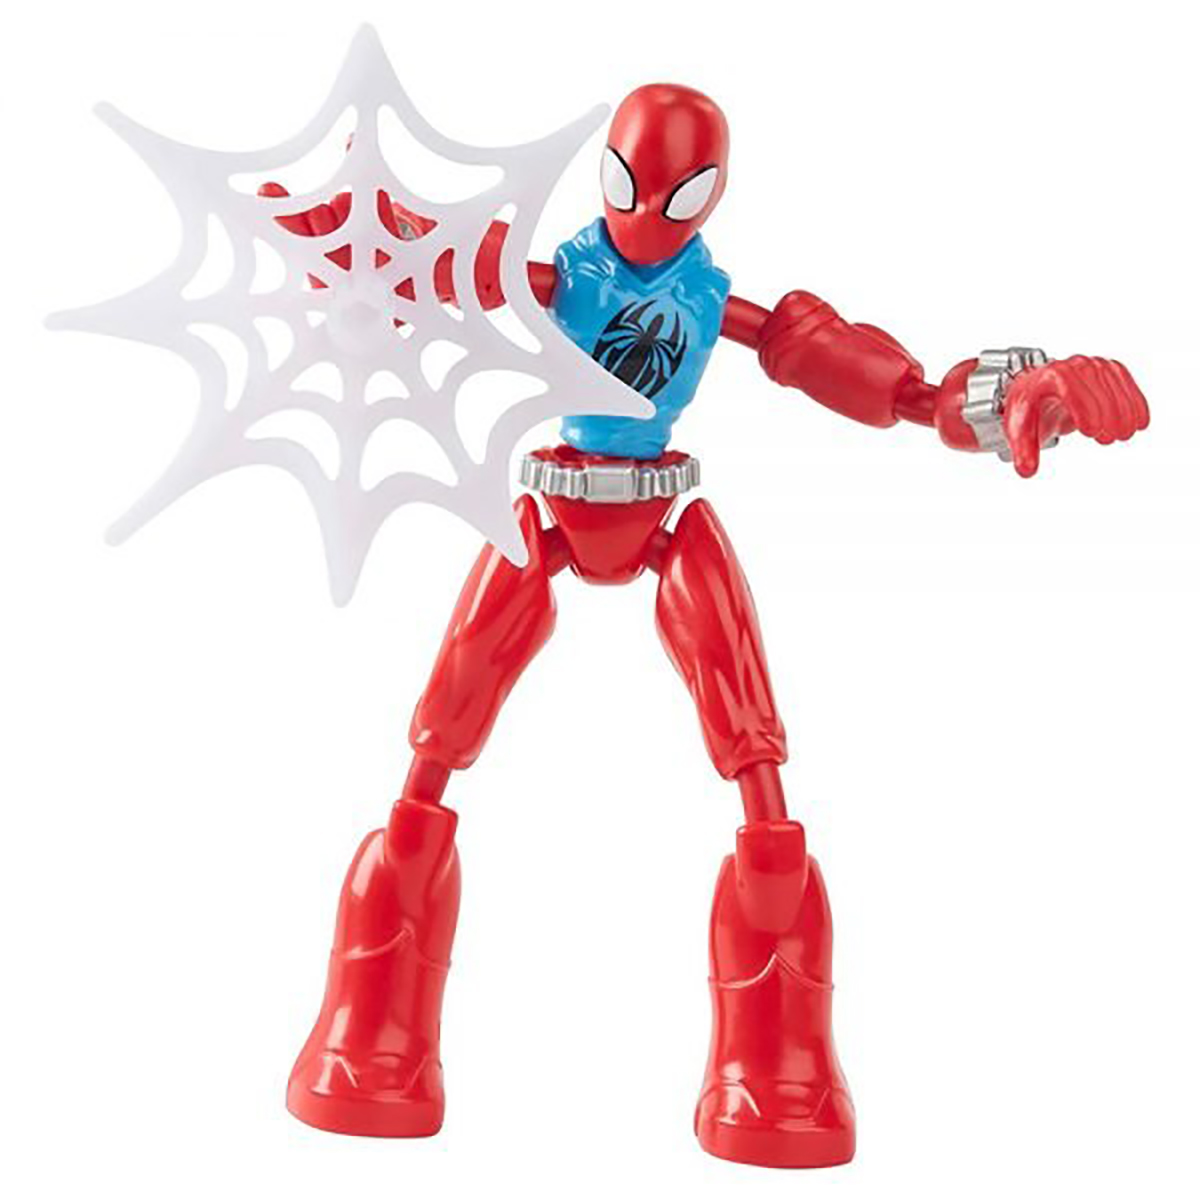 Figurina flexibila Spiderman Bend and Flex, Scarlet Spider F2297